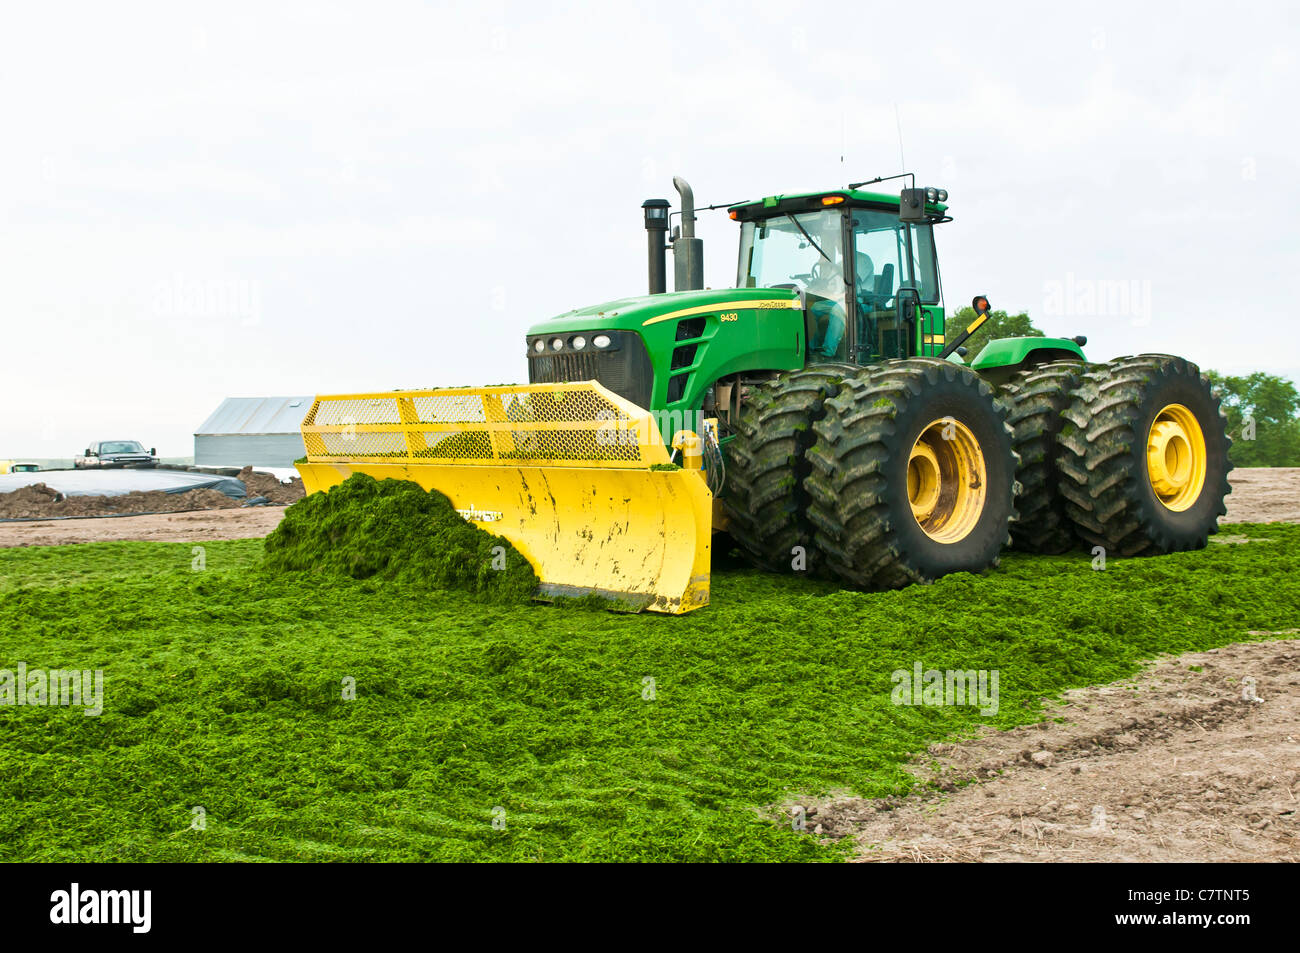 Freshly cut alfalfa silage is spread into rows with a tractor and blade on a farm in South Dakota. - Stock Image